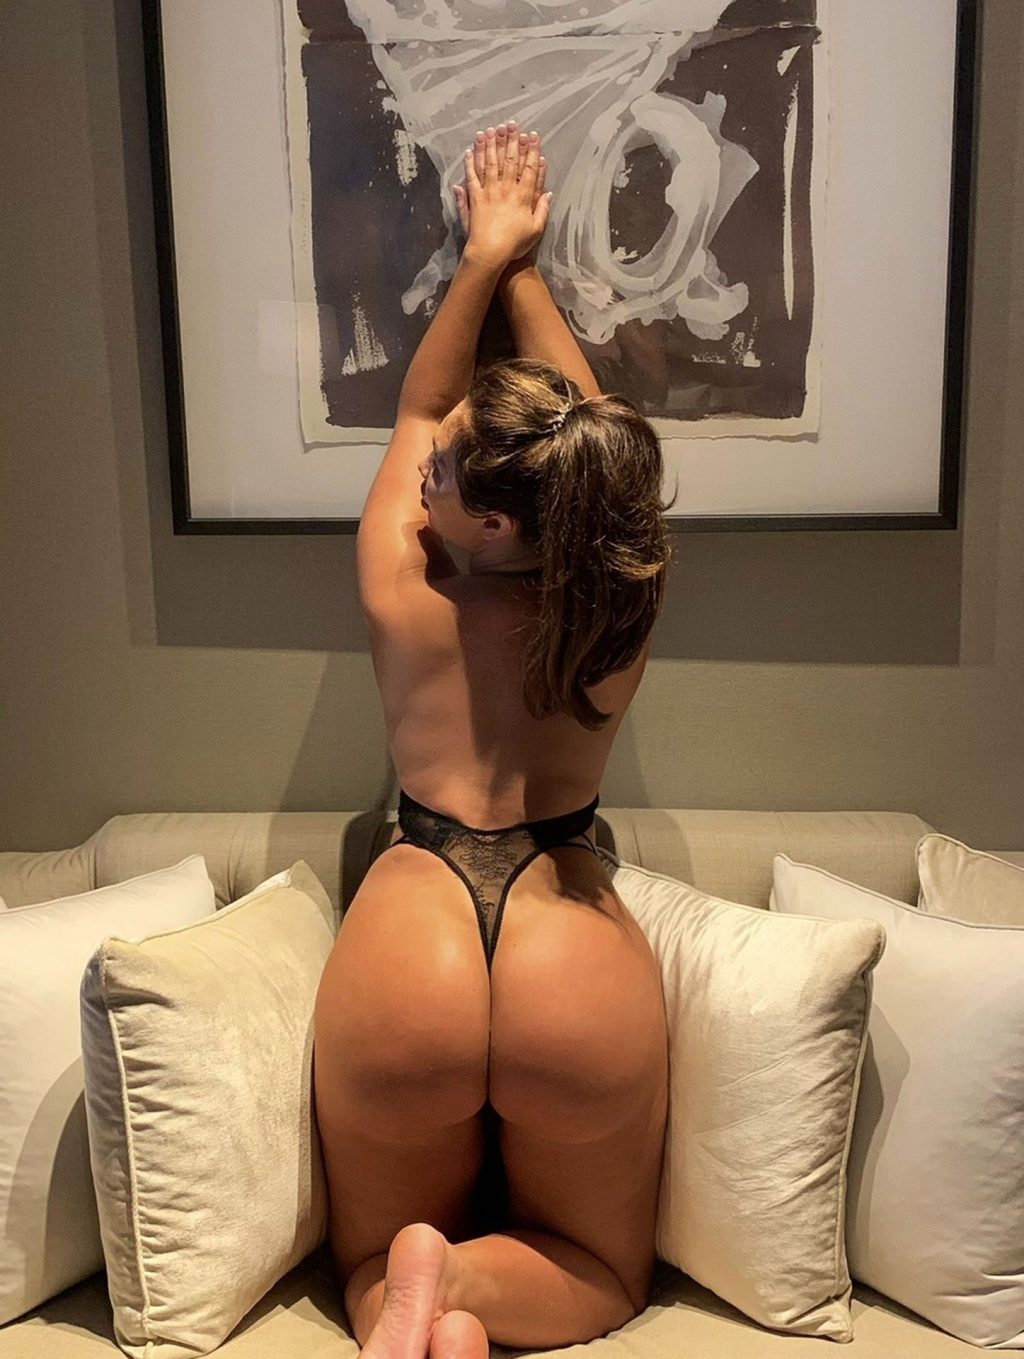 Lauren Goodger Pictured Showing Off Her Ass at Home in Essex (2 Photos)